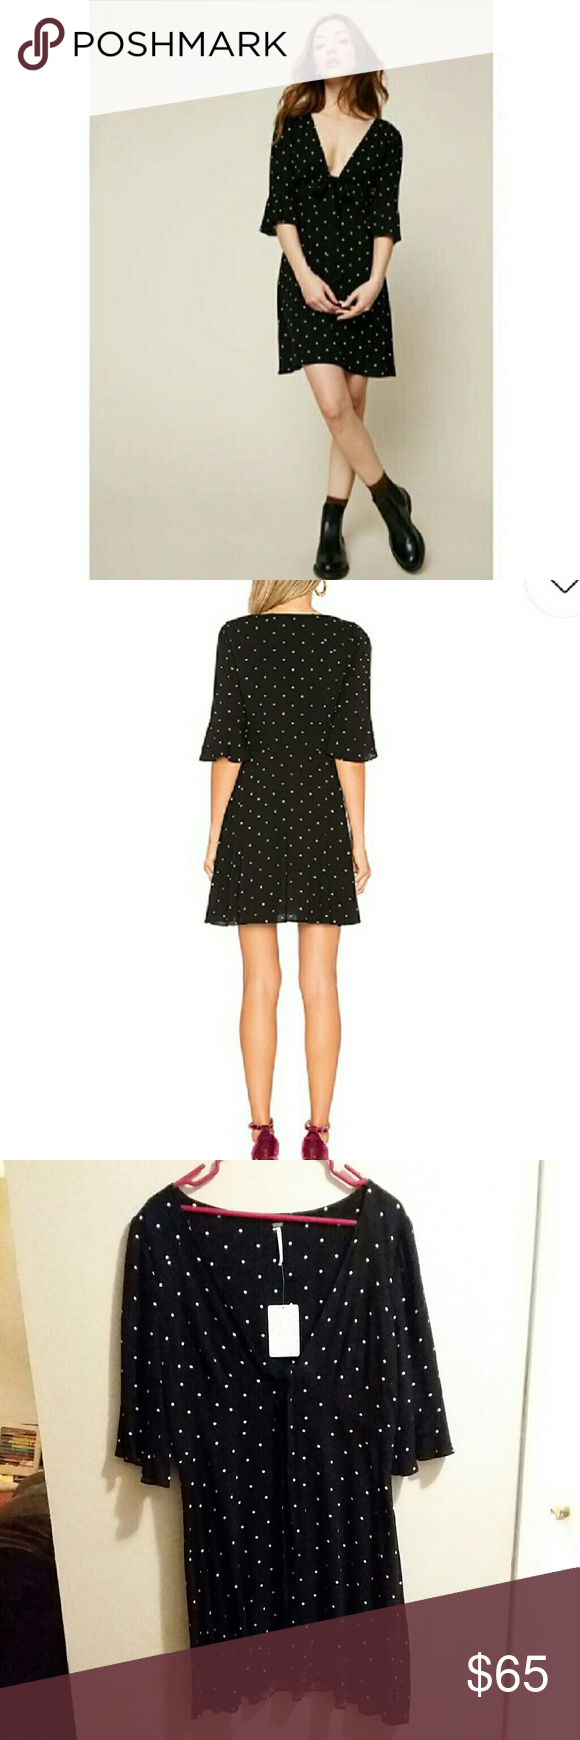 1024617ec5a3 Free People NWT Black with White Polka Dot Dress NWT Free People black mini  dress with